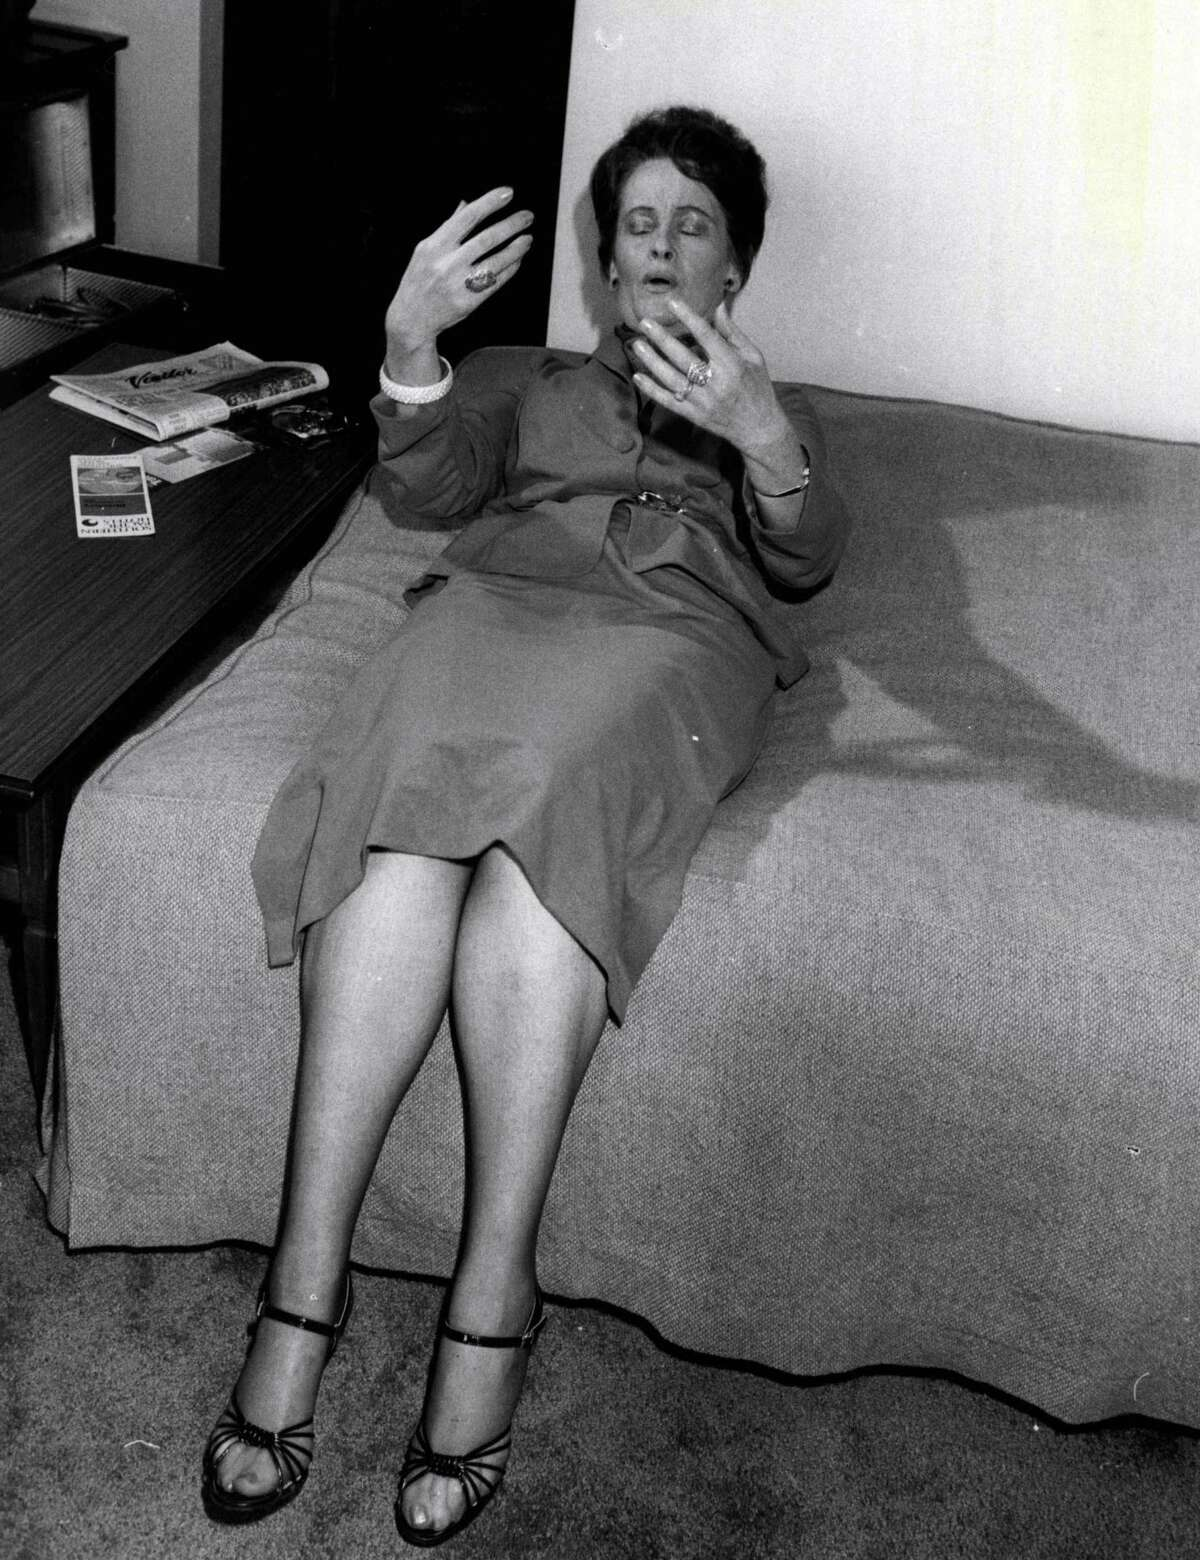 American ghost hunter, Mrs. Lorraine Warren shows how she lay back on a bed in the home of Mrs. Wendy Evans of Gladesville, and that she felt vibrations.